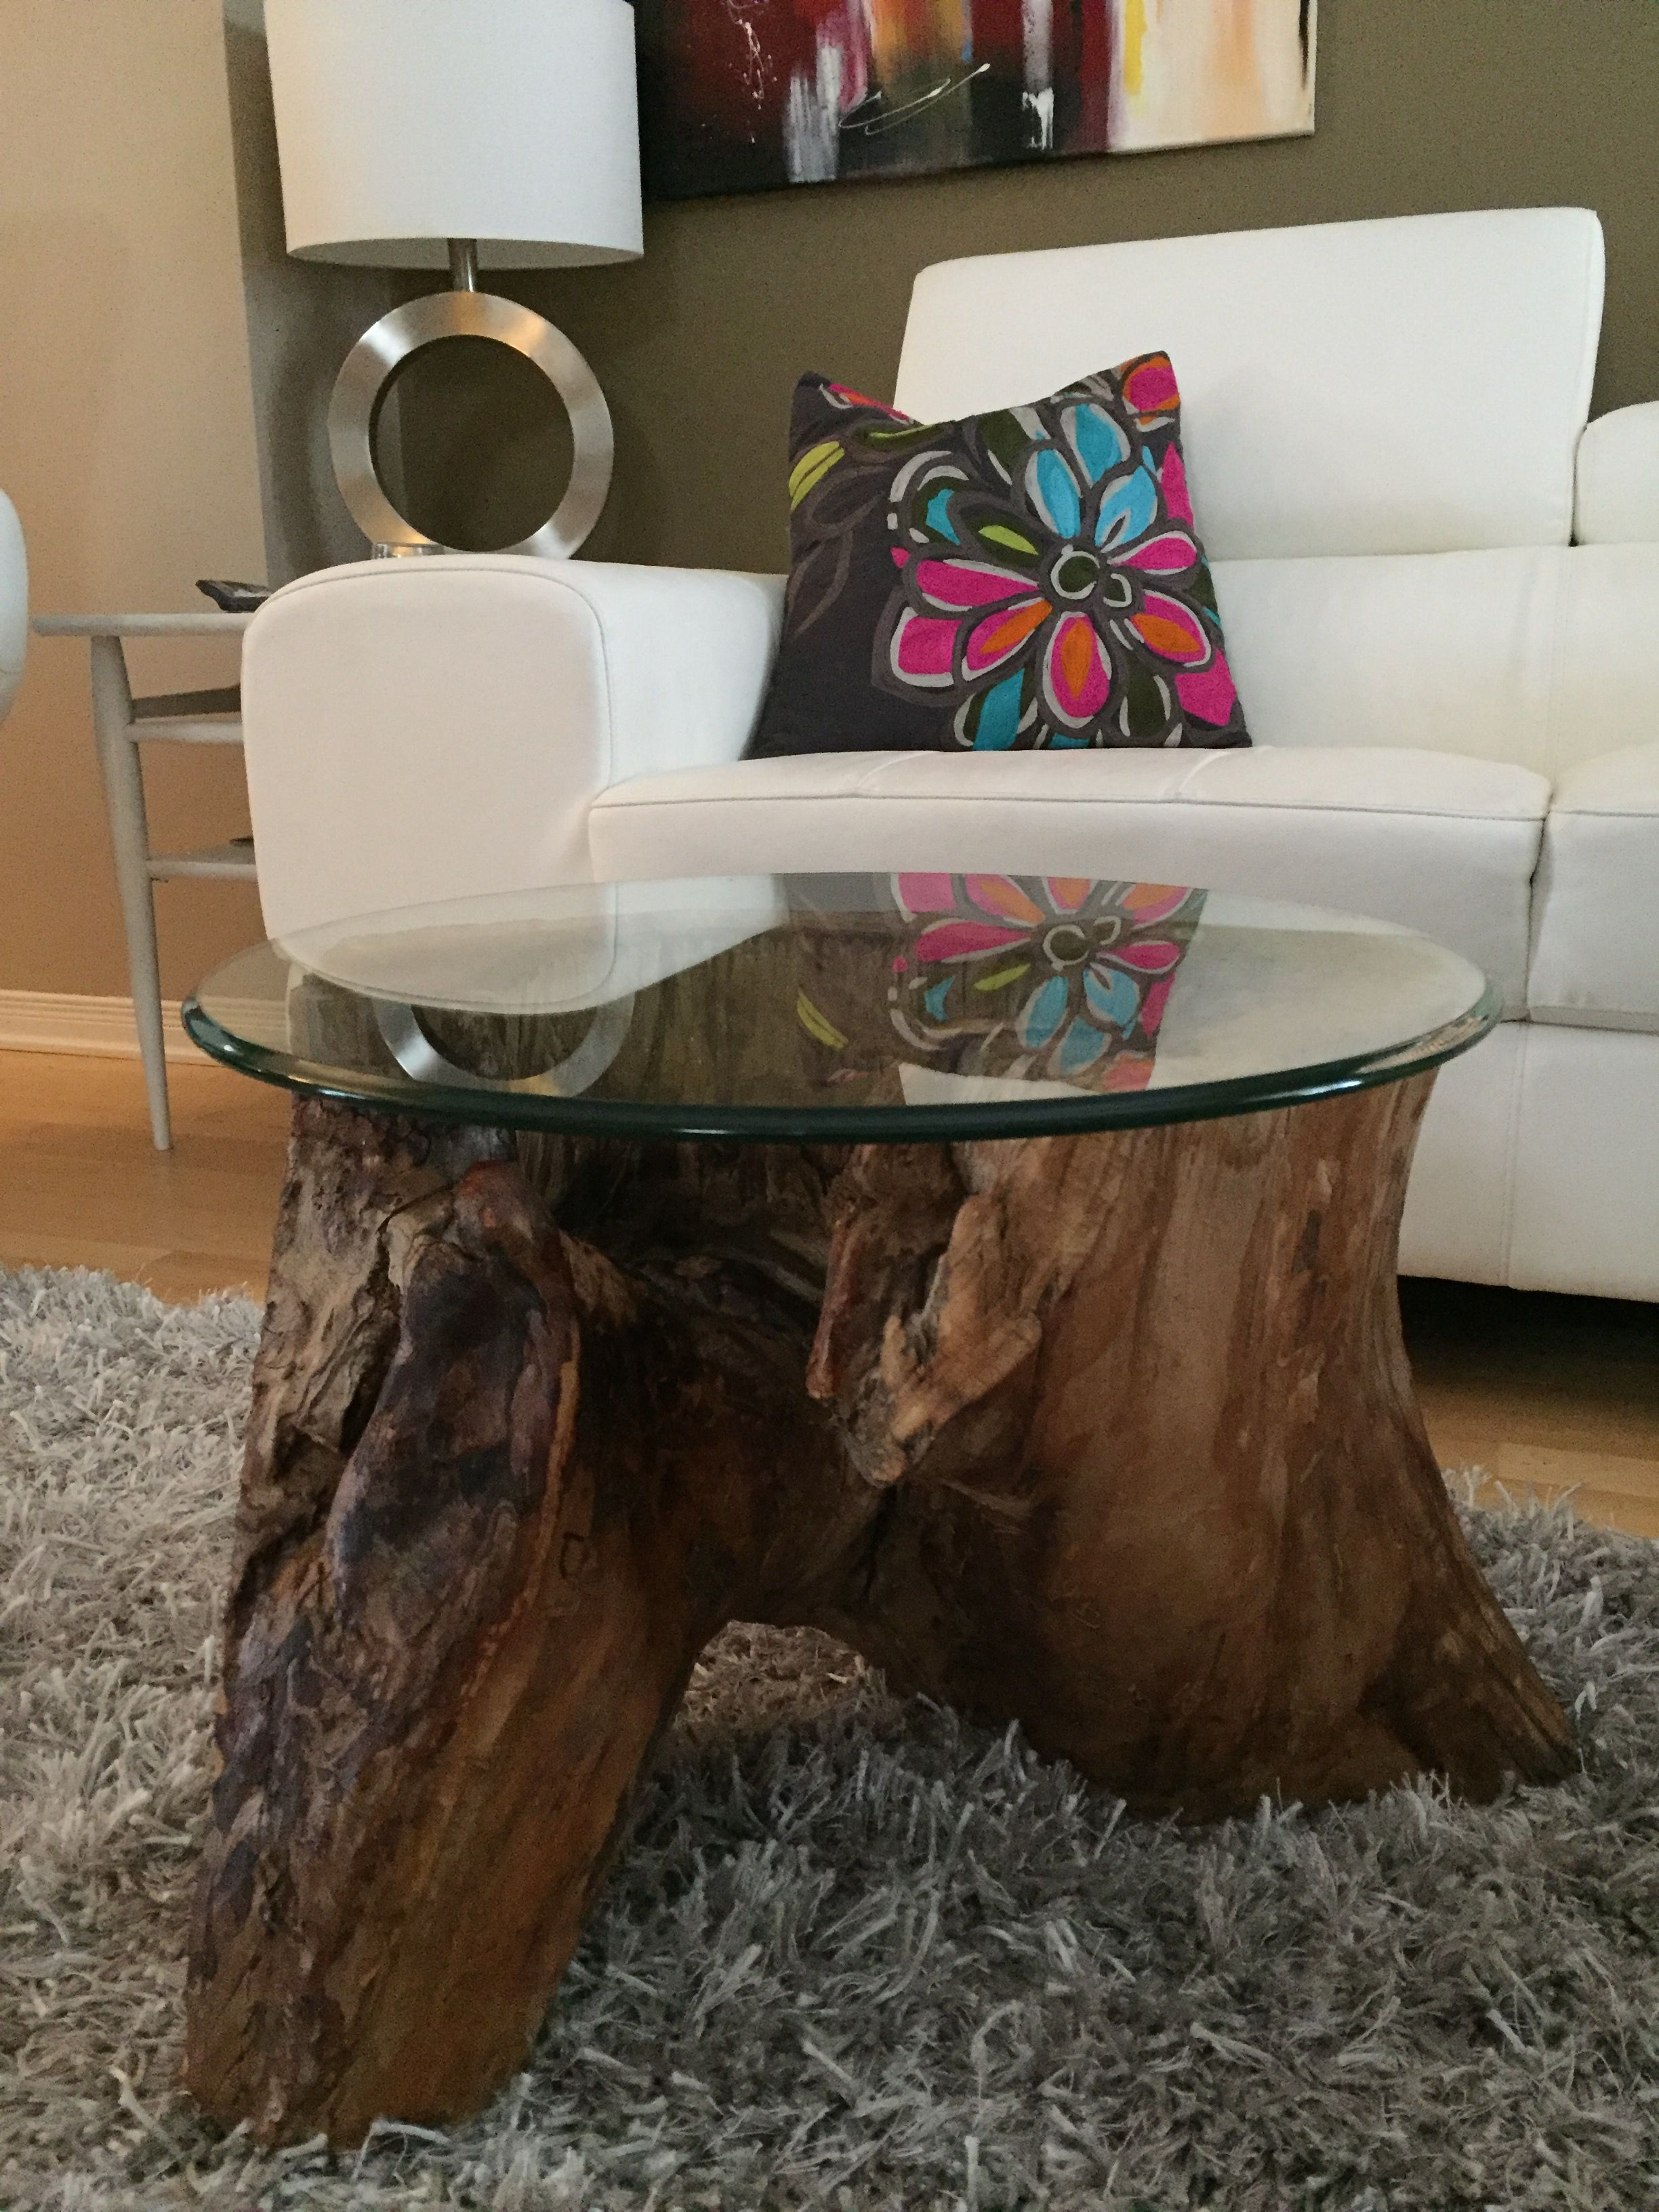 Pin On Tree Stump Tables Stump Side Tables Root Coffee Tables Tree Root Coffee Table Live Edge Coffee Tables Wood Metal Benches Log Furniture Ha [ 3264 x 2448 Pixel ]